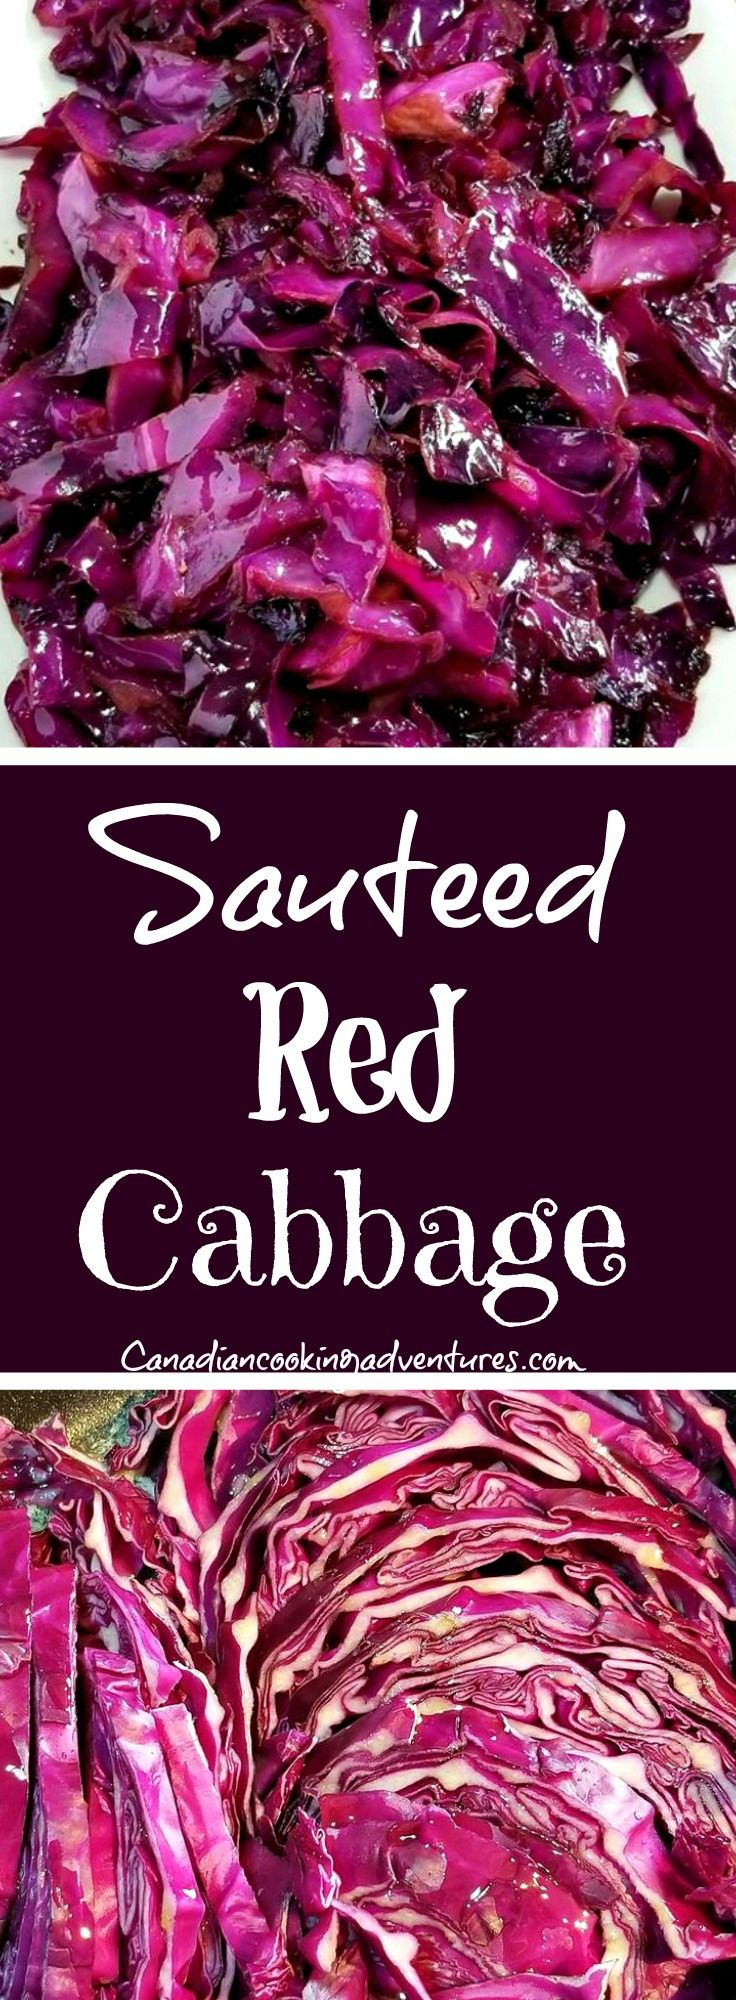 Sauteed Red Cabbage! https://canadiancookingadventures.com/recipe/sauteed-red-cabbage/ #cabbage #red #sidedish #vegetable #delcious #foodie #buzzfeedfood #buzzfeed #EEEEEATS #buzzfeast #healthyrecipes #getinmybelly #MealPrep #Bowls #lowcarb #carbfree #vegetariano #glutenfree #recipe #buzzfeed #recipes #recipe #foodie #food #foodgram #mealpreps #foodie #foodblogger #eatingspoon #recipe #loveyourself #cancerfighting #healthyrecipes #antioxidants #canadiancookingadventures